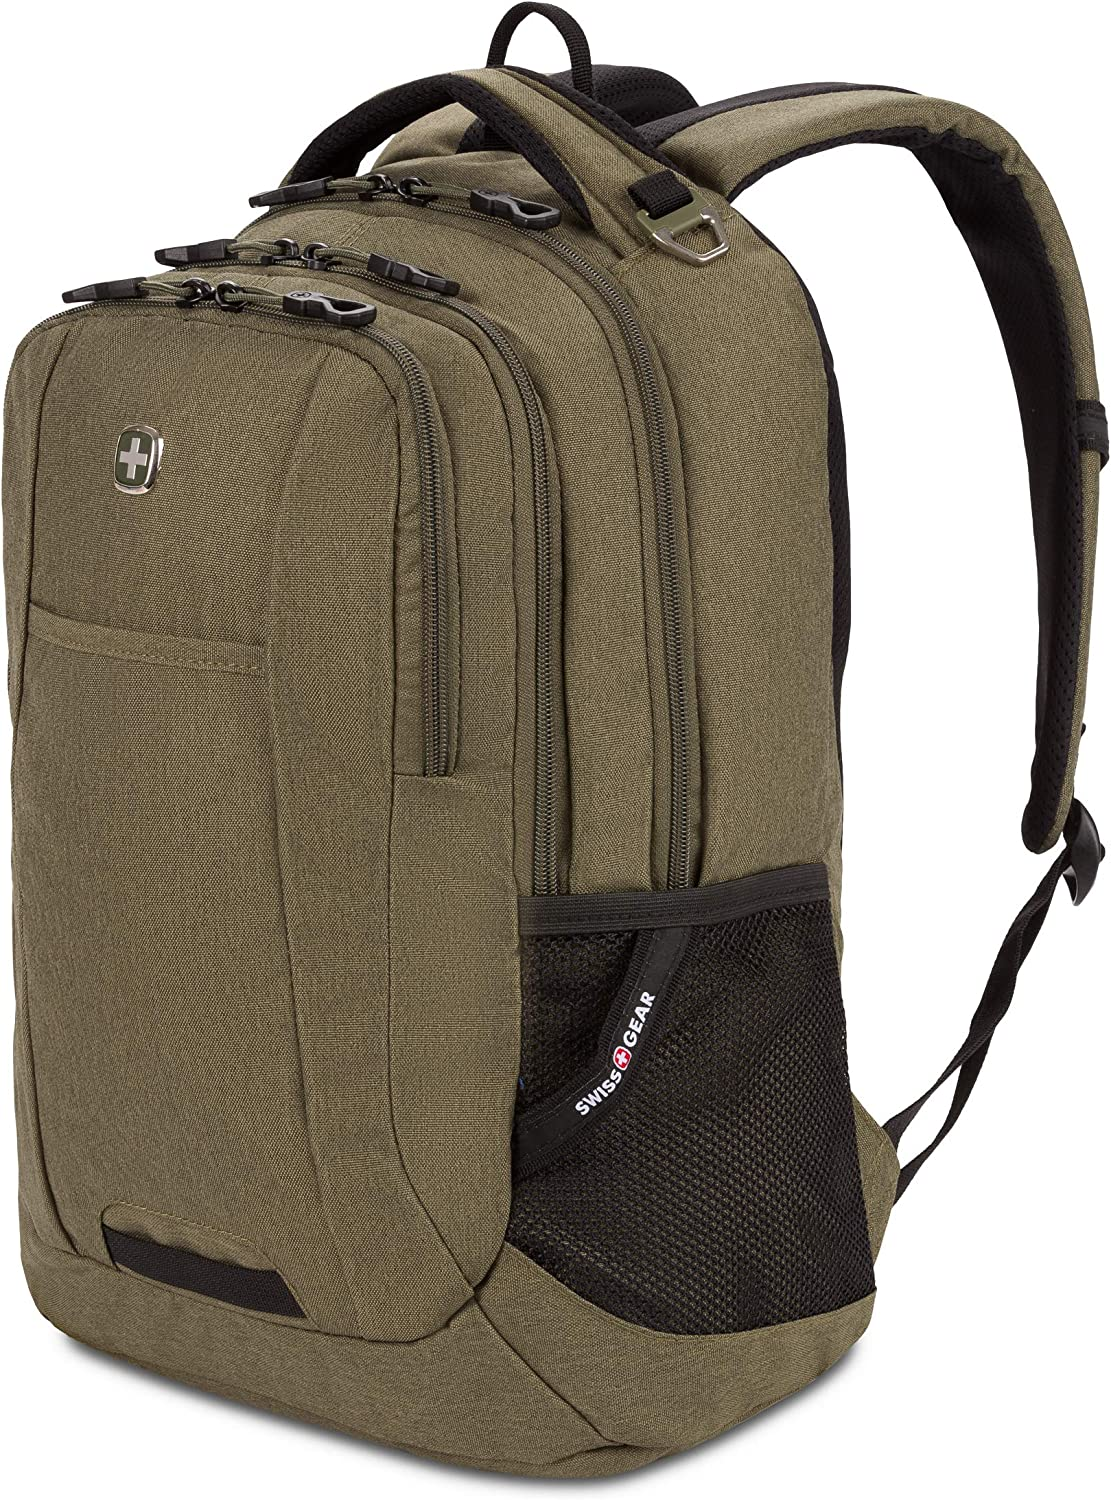 SWISSGEAR 5505 Laptop Backpack for Men and Women, Ideal for Commuting, Work, Travel, College, and School, Fits 15 Inch Laptop Notebook (Olive)